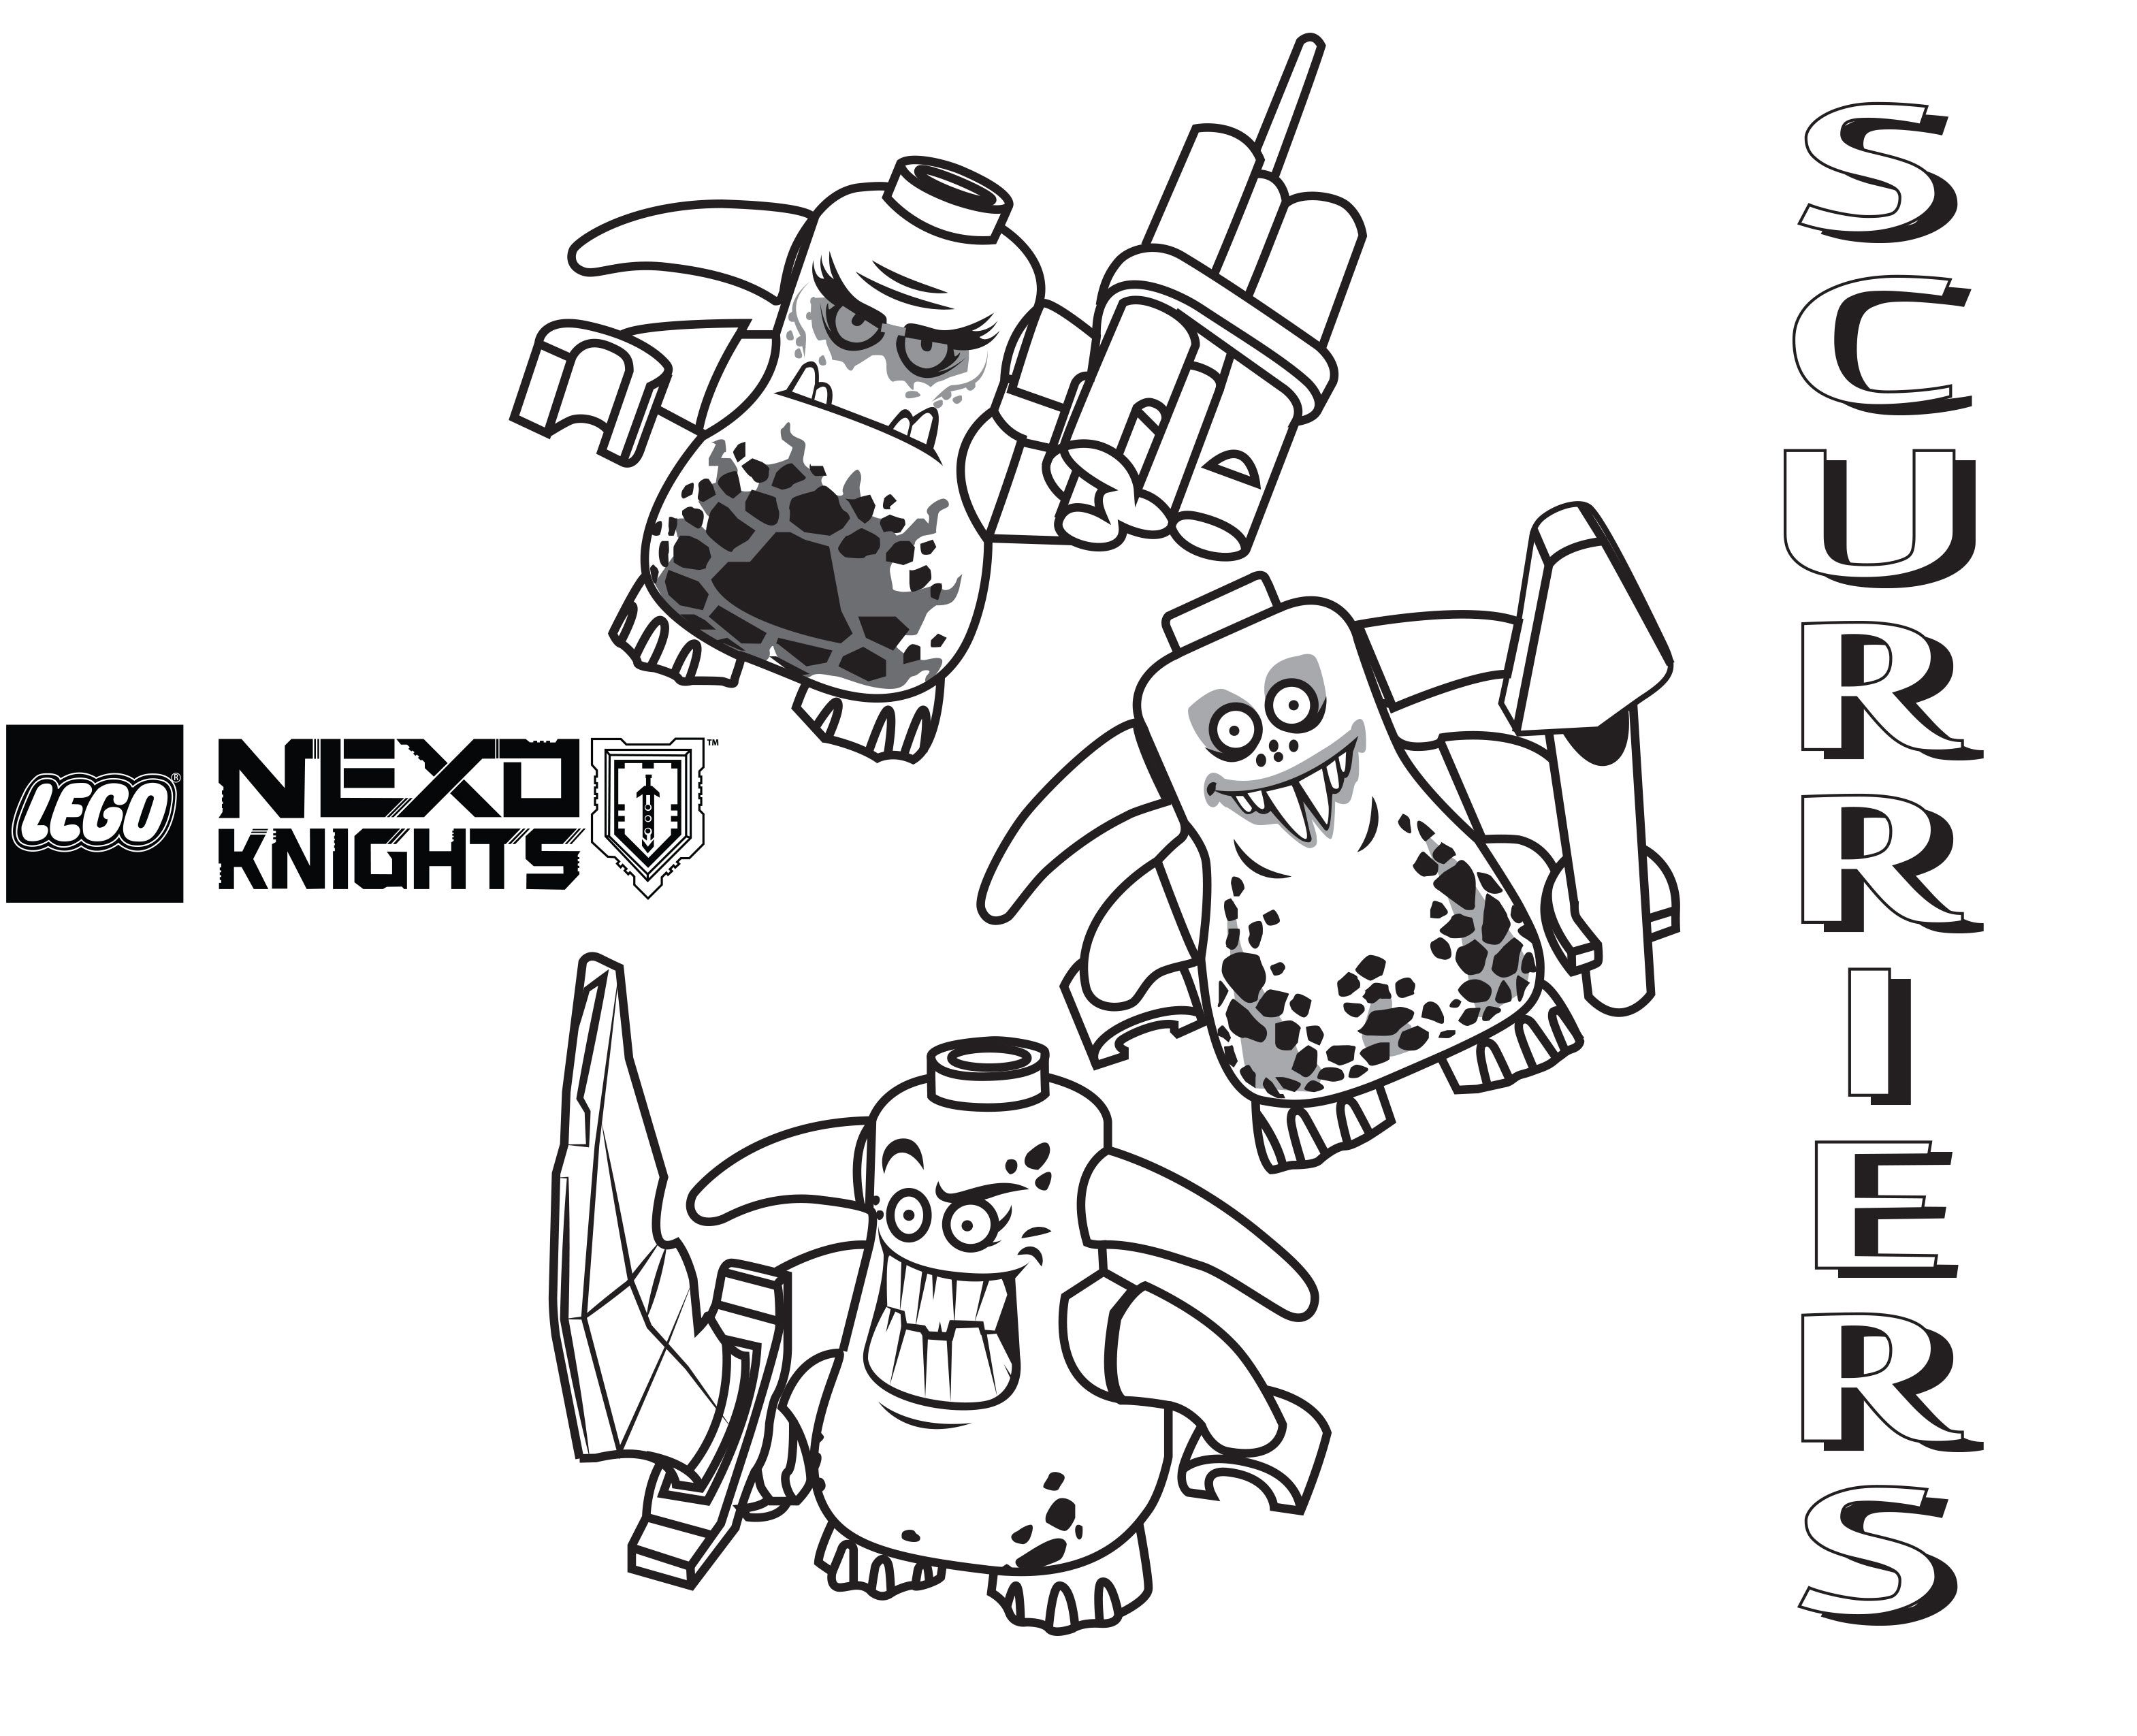 Nexo Knights Ausmalbilder Jestro : Nexo Lego Knights Coloring Pages Color Pages Pinterest Color